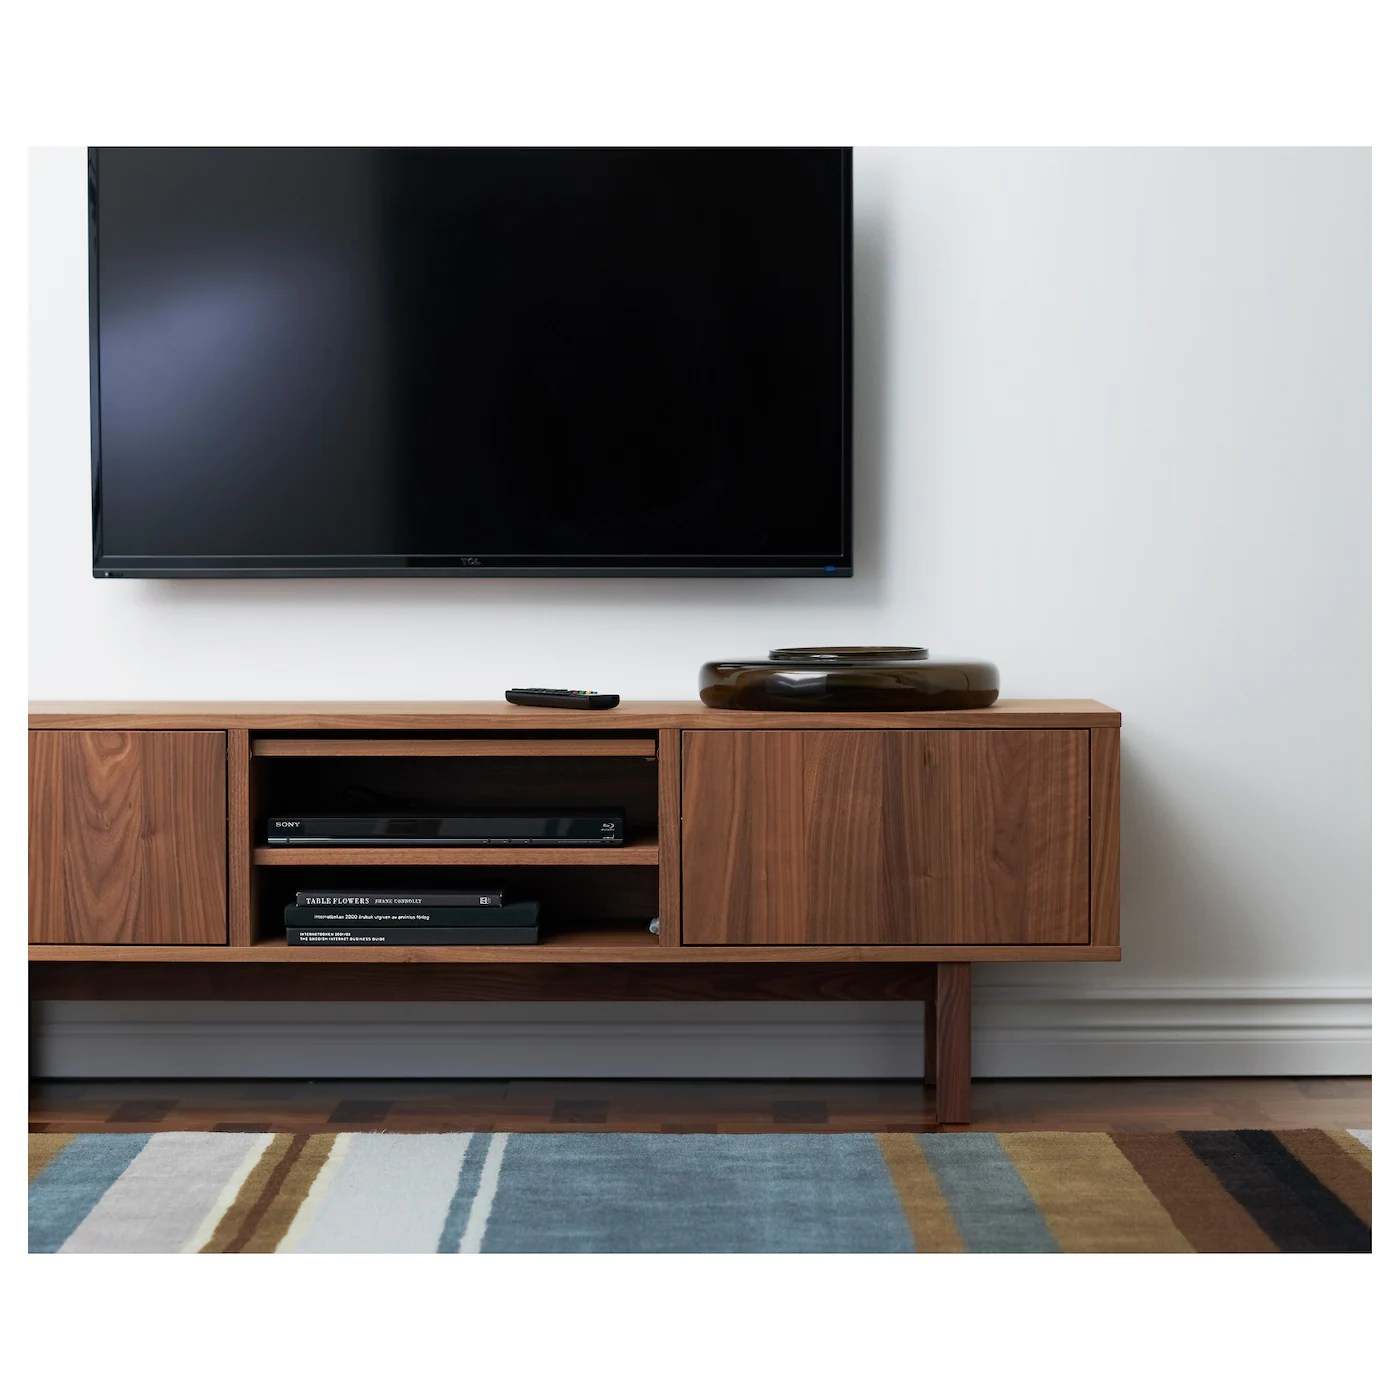 Tv Unit Canada Stockholm Tv Bench Walnut Veneer 160 X 40 X 50 Cm Ikea